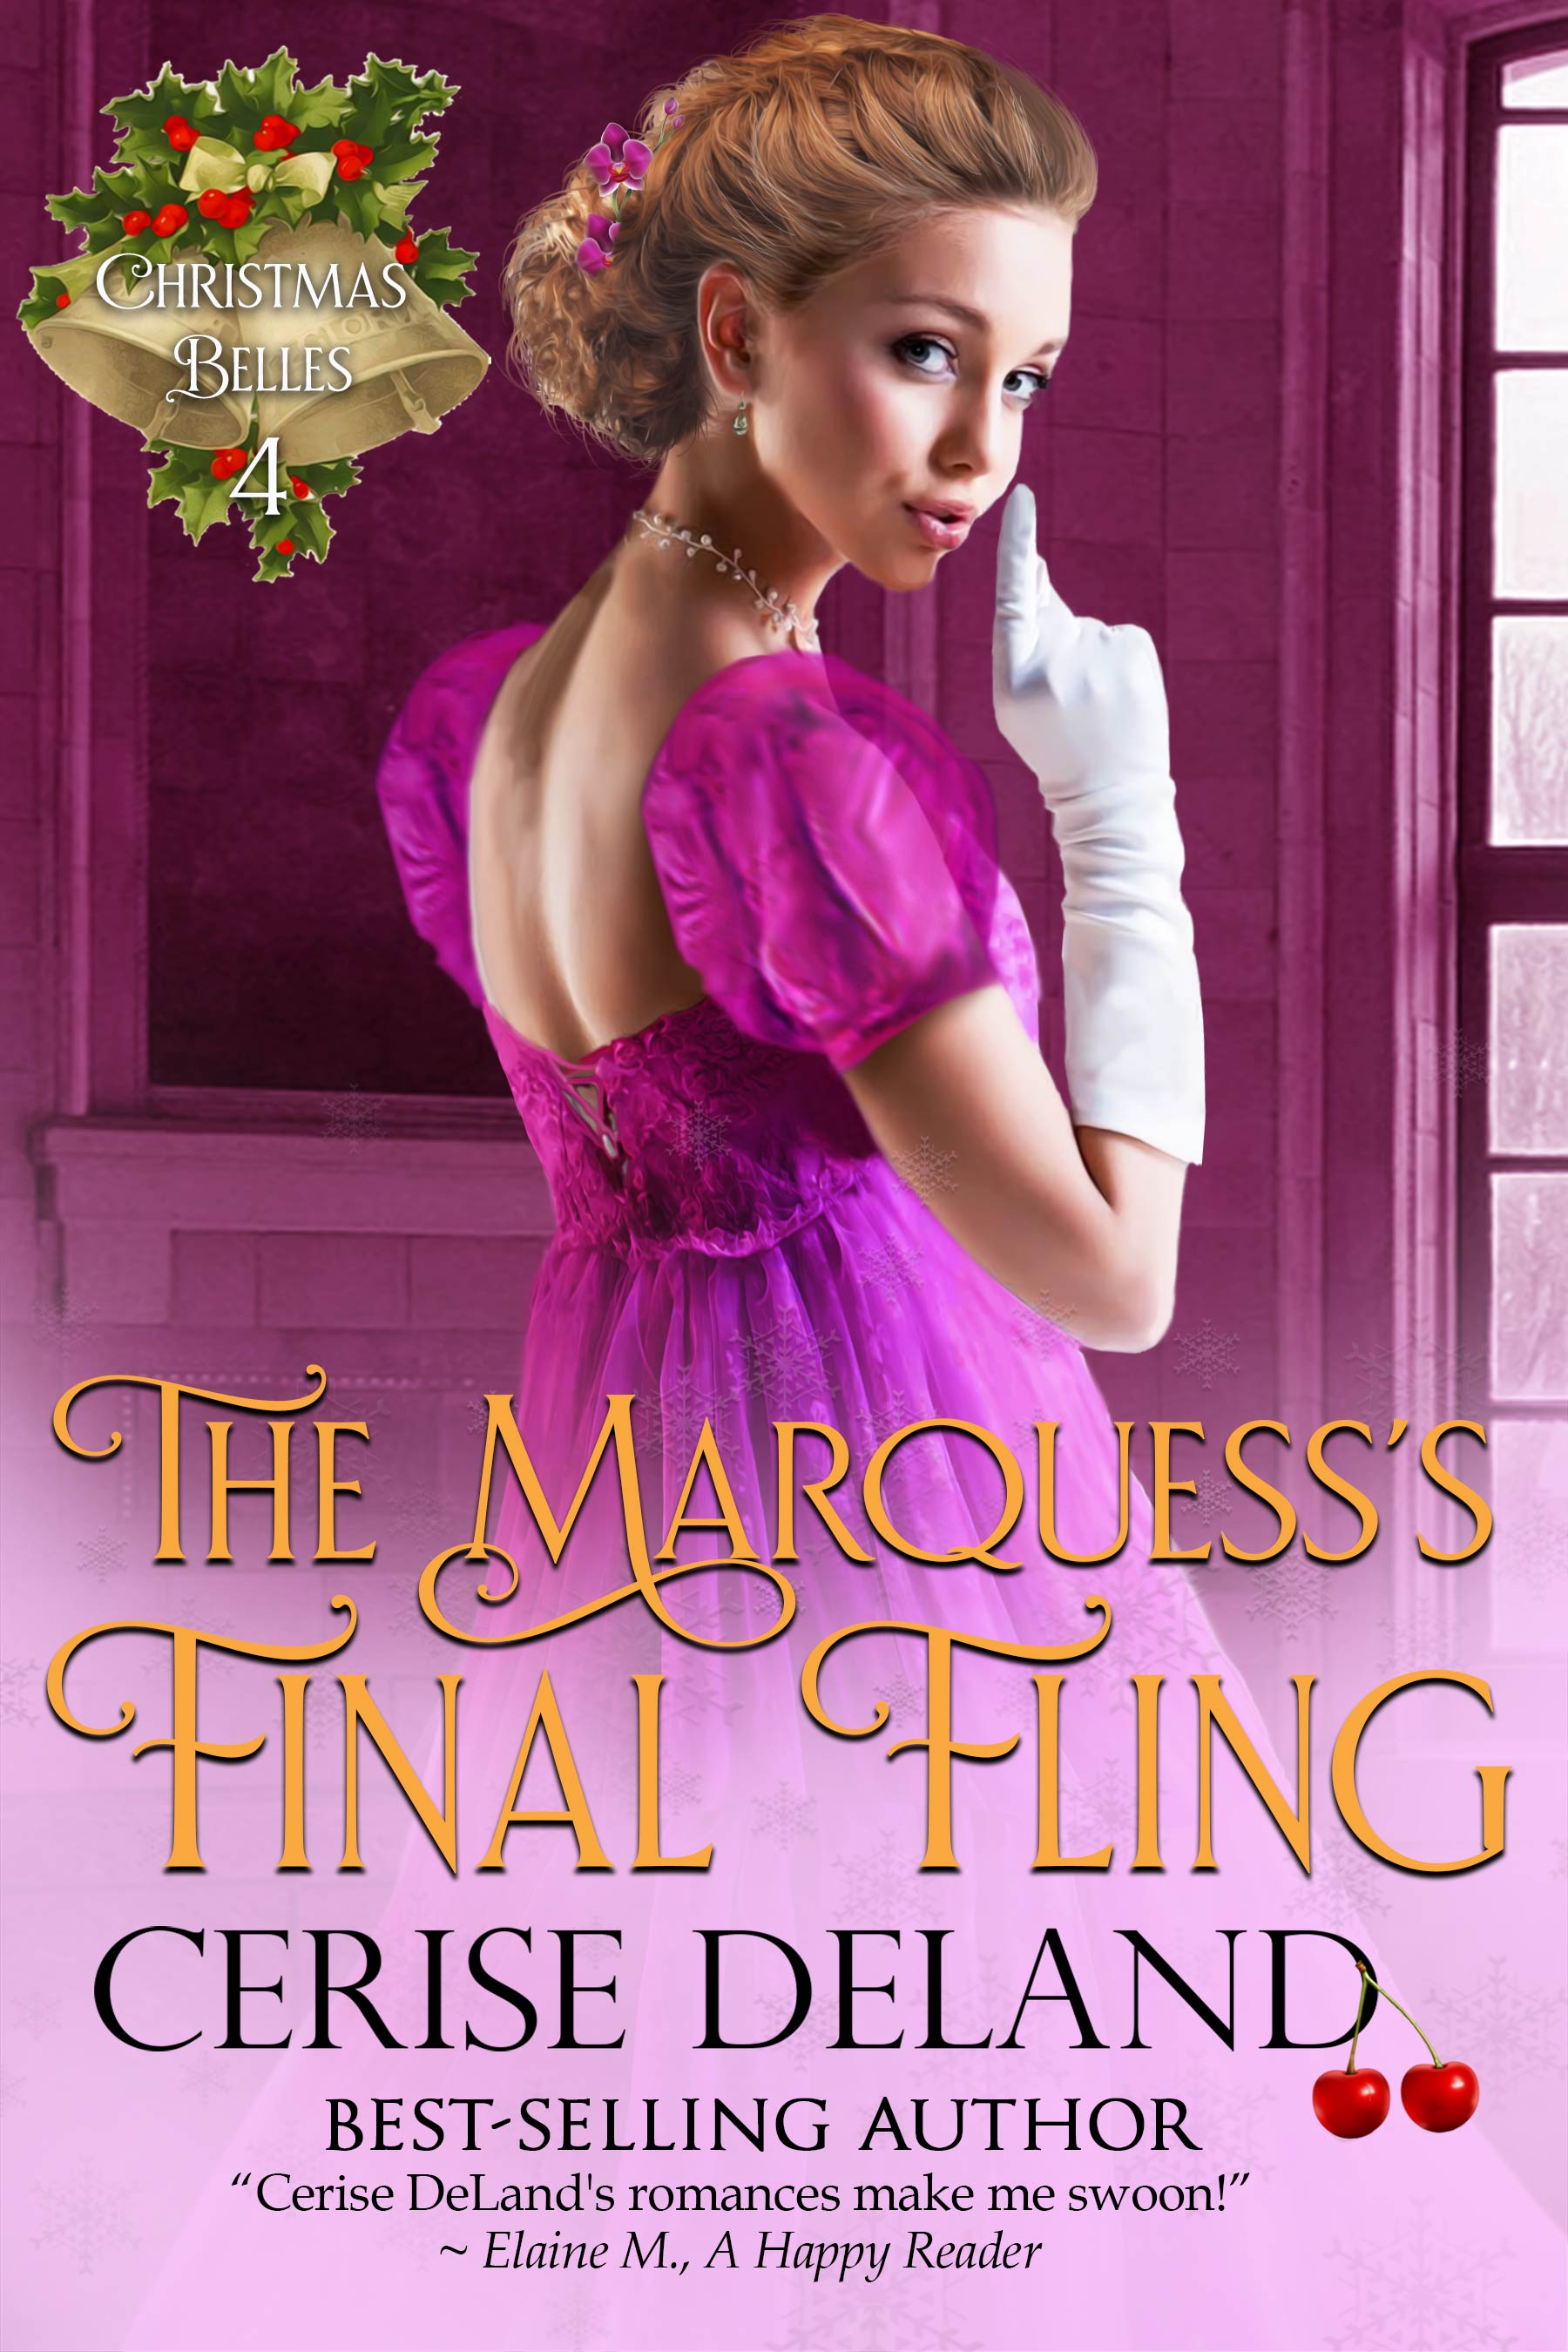 The Marquess's Final Fling, Christmas Belles, Book 4 by Cerise DeLand